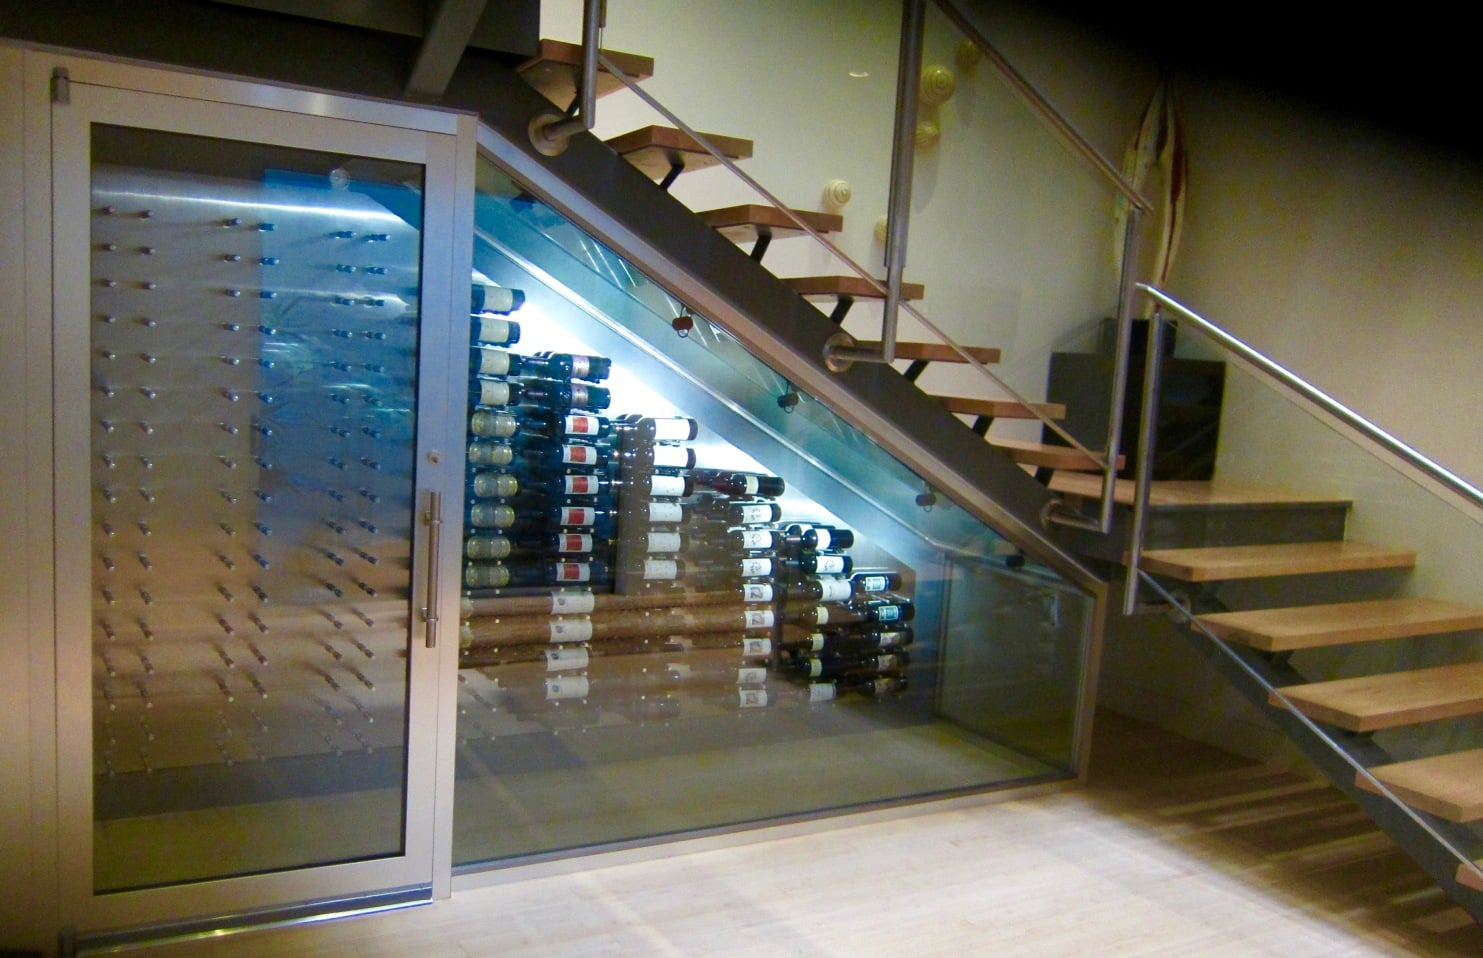 Modern Wine Cellar Dallas Contemporary Custom Wine Display Under Gravity-Defying Staircase in a Dallas Home